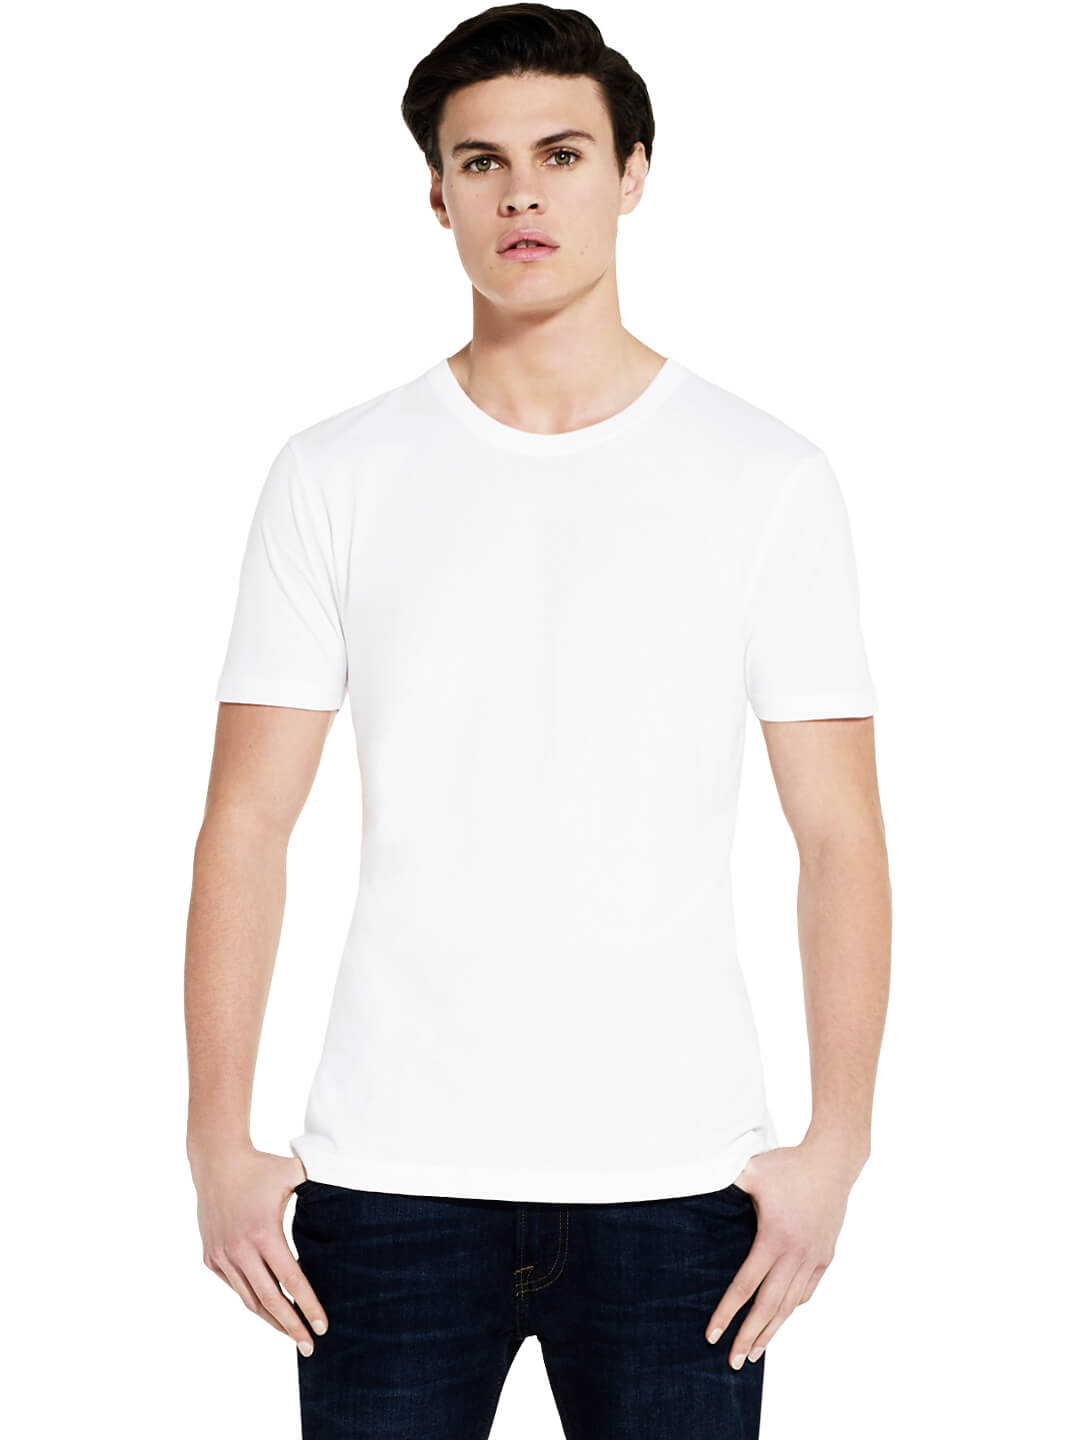 Slim Fit Organic Cotton T-shirt: Earth Positive